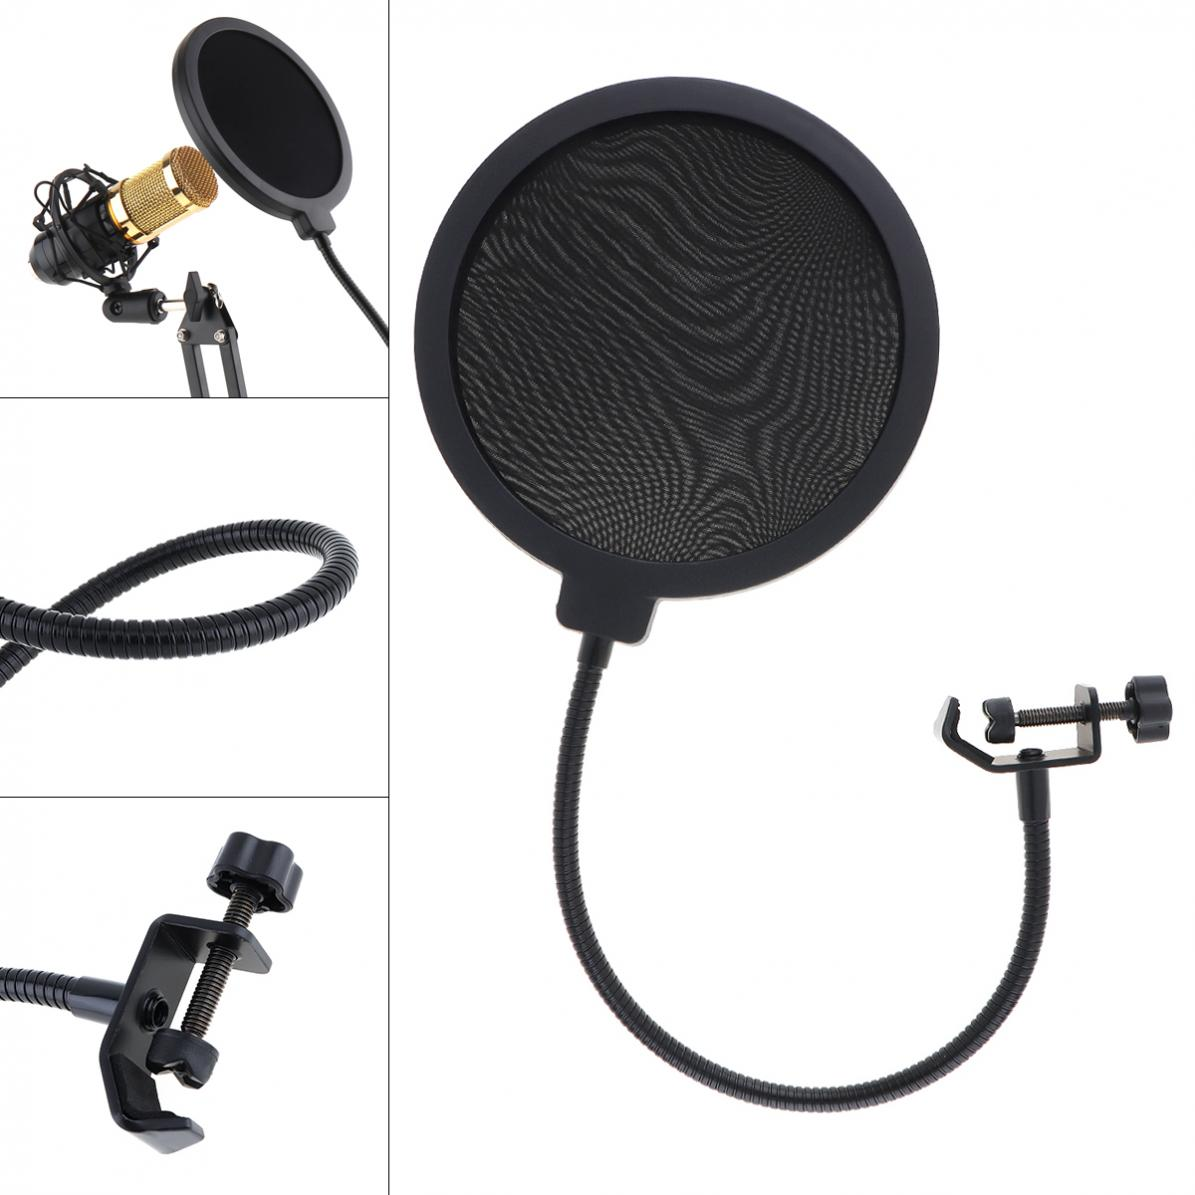 Practical Double Layer Studio Microphone Flexible Wind Screen Mask Mic Pop Filter Shield For Speaking Recording Accessories